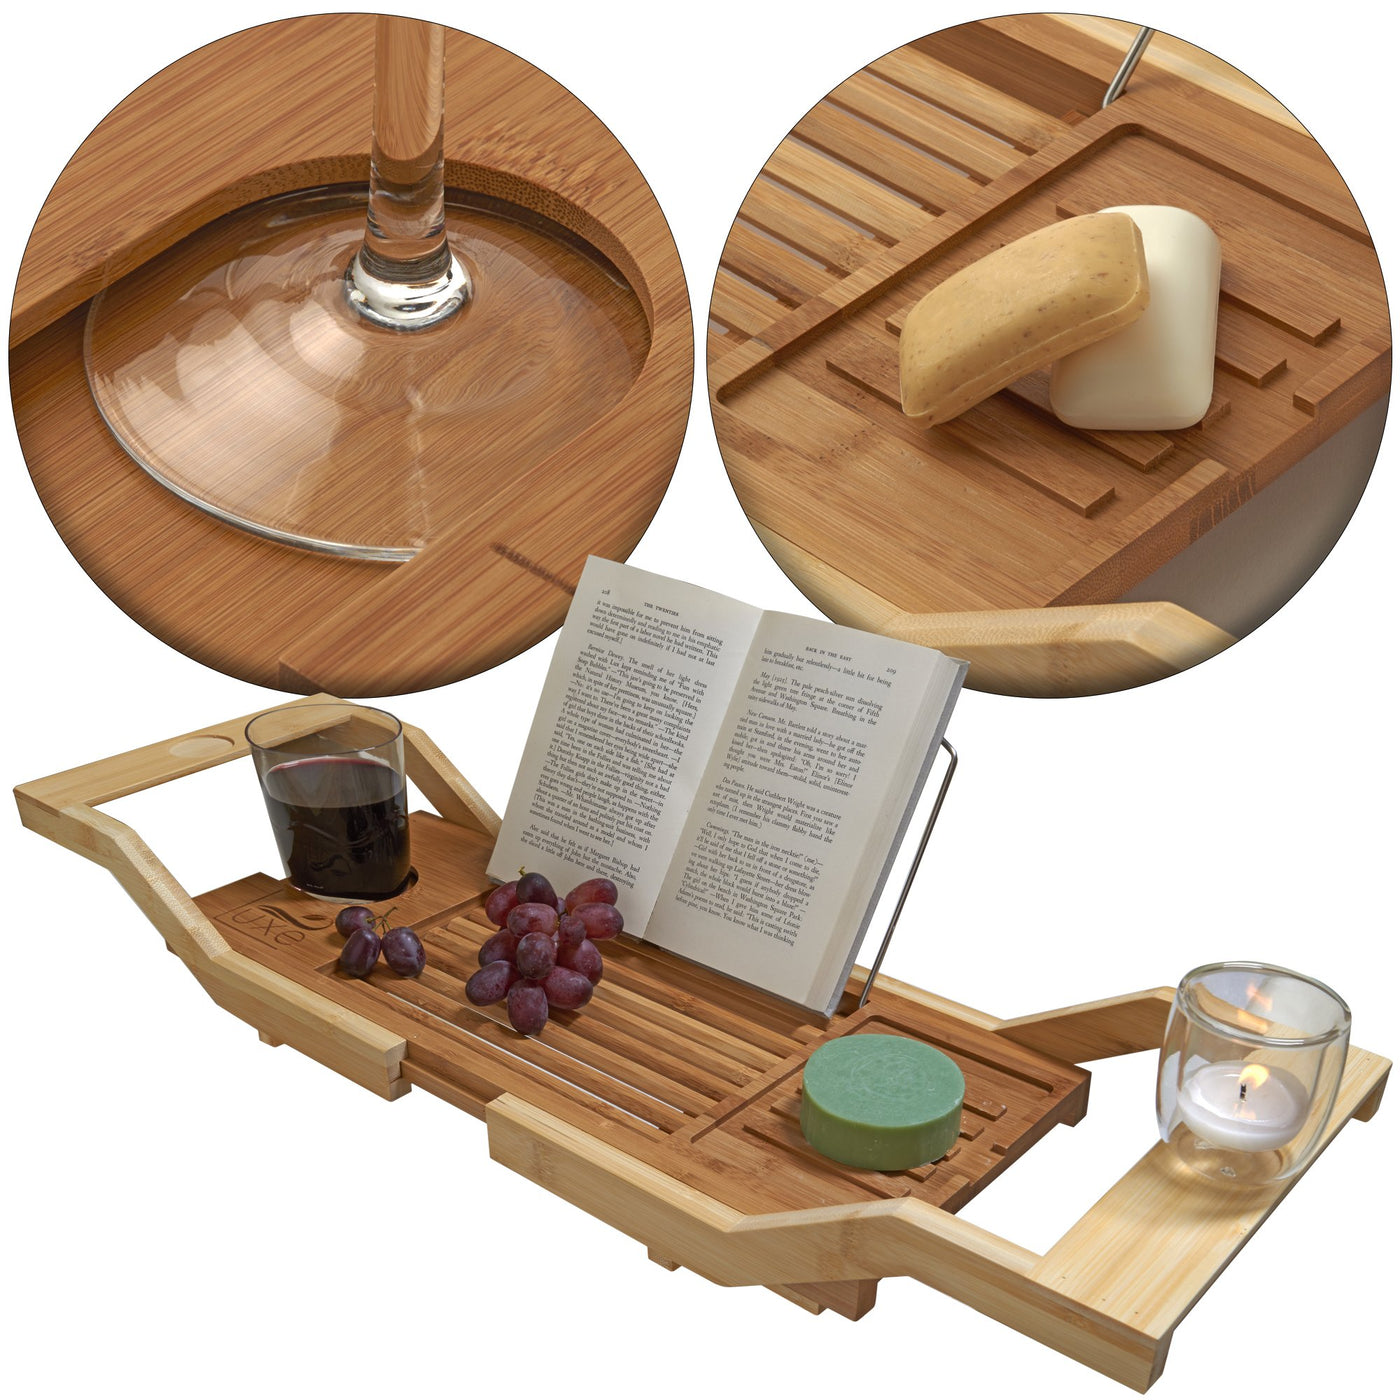 Expandable Bamboo Bathtub Tray Caddy With Reading Rack And